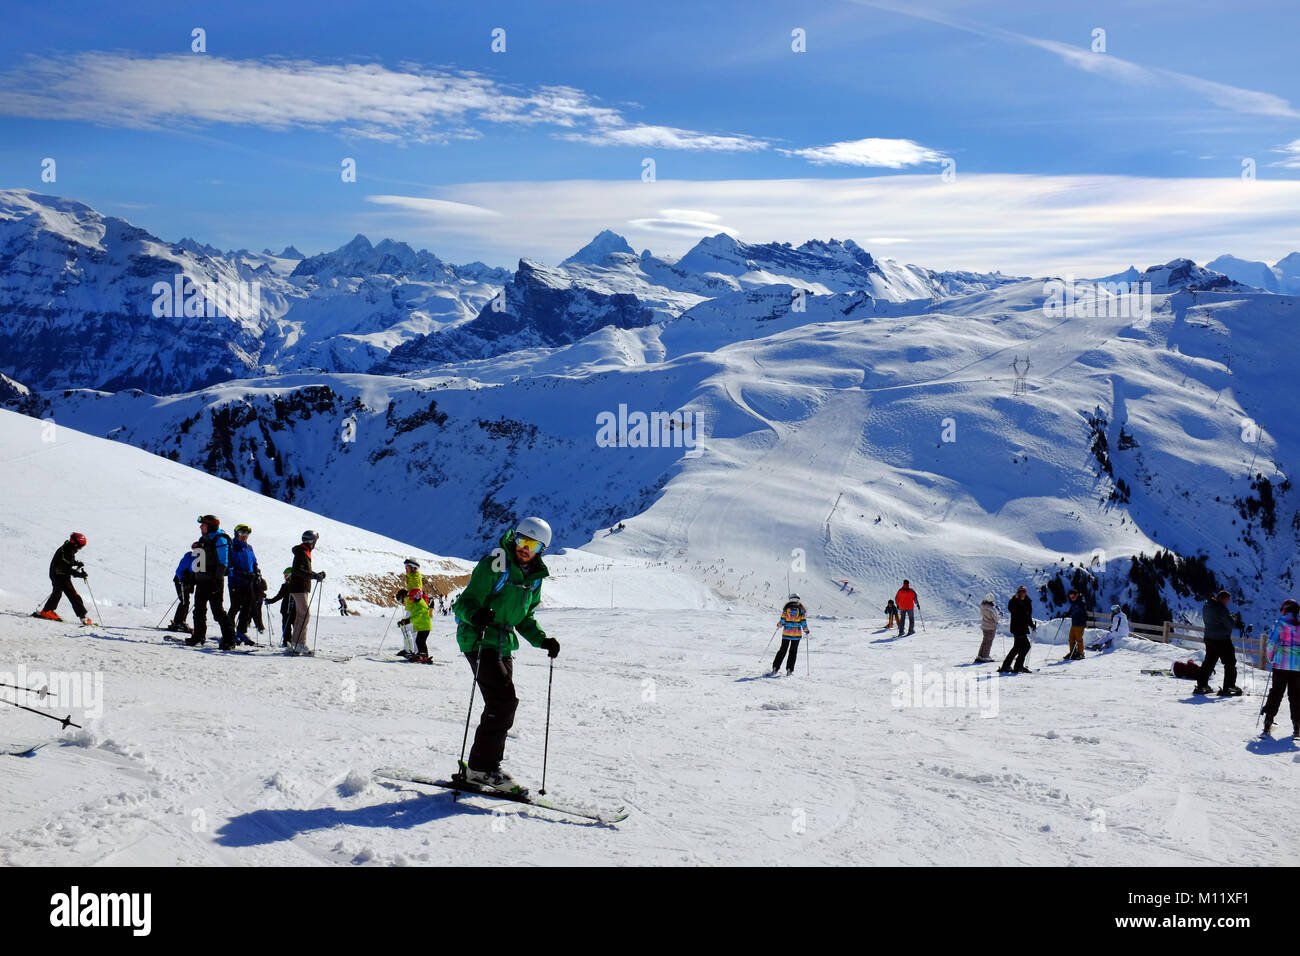 View of Skiers from the chair lift on a Sunny ski piste Samoens France - Stock Image